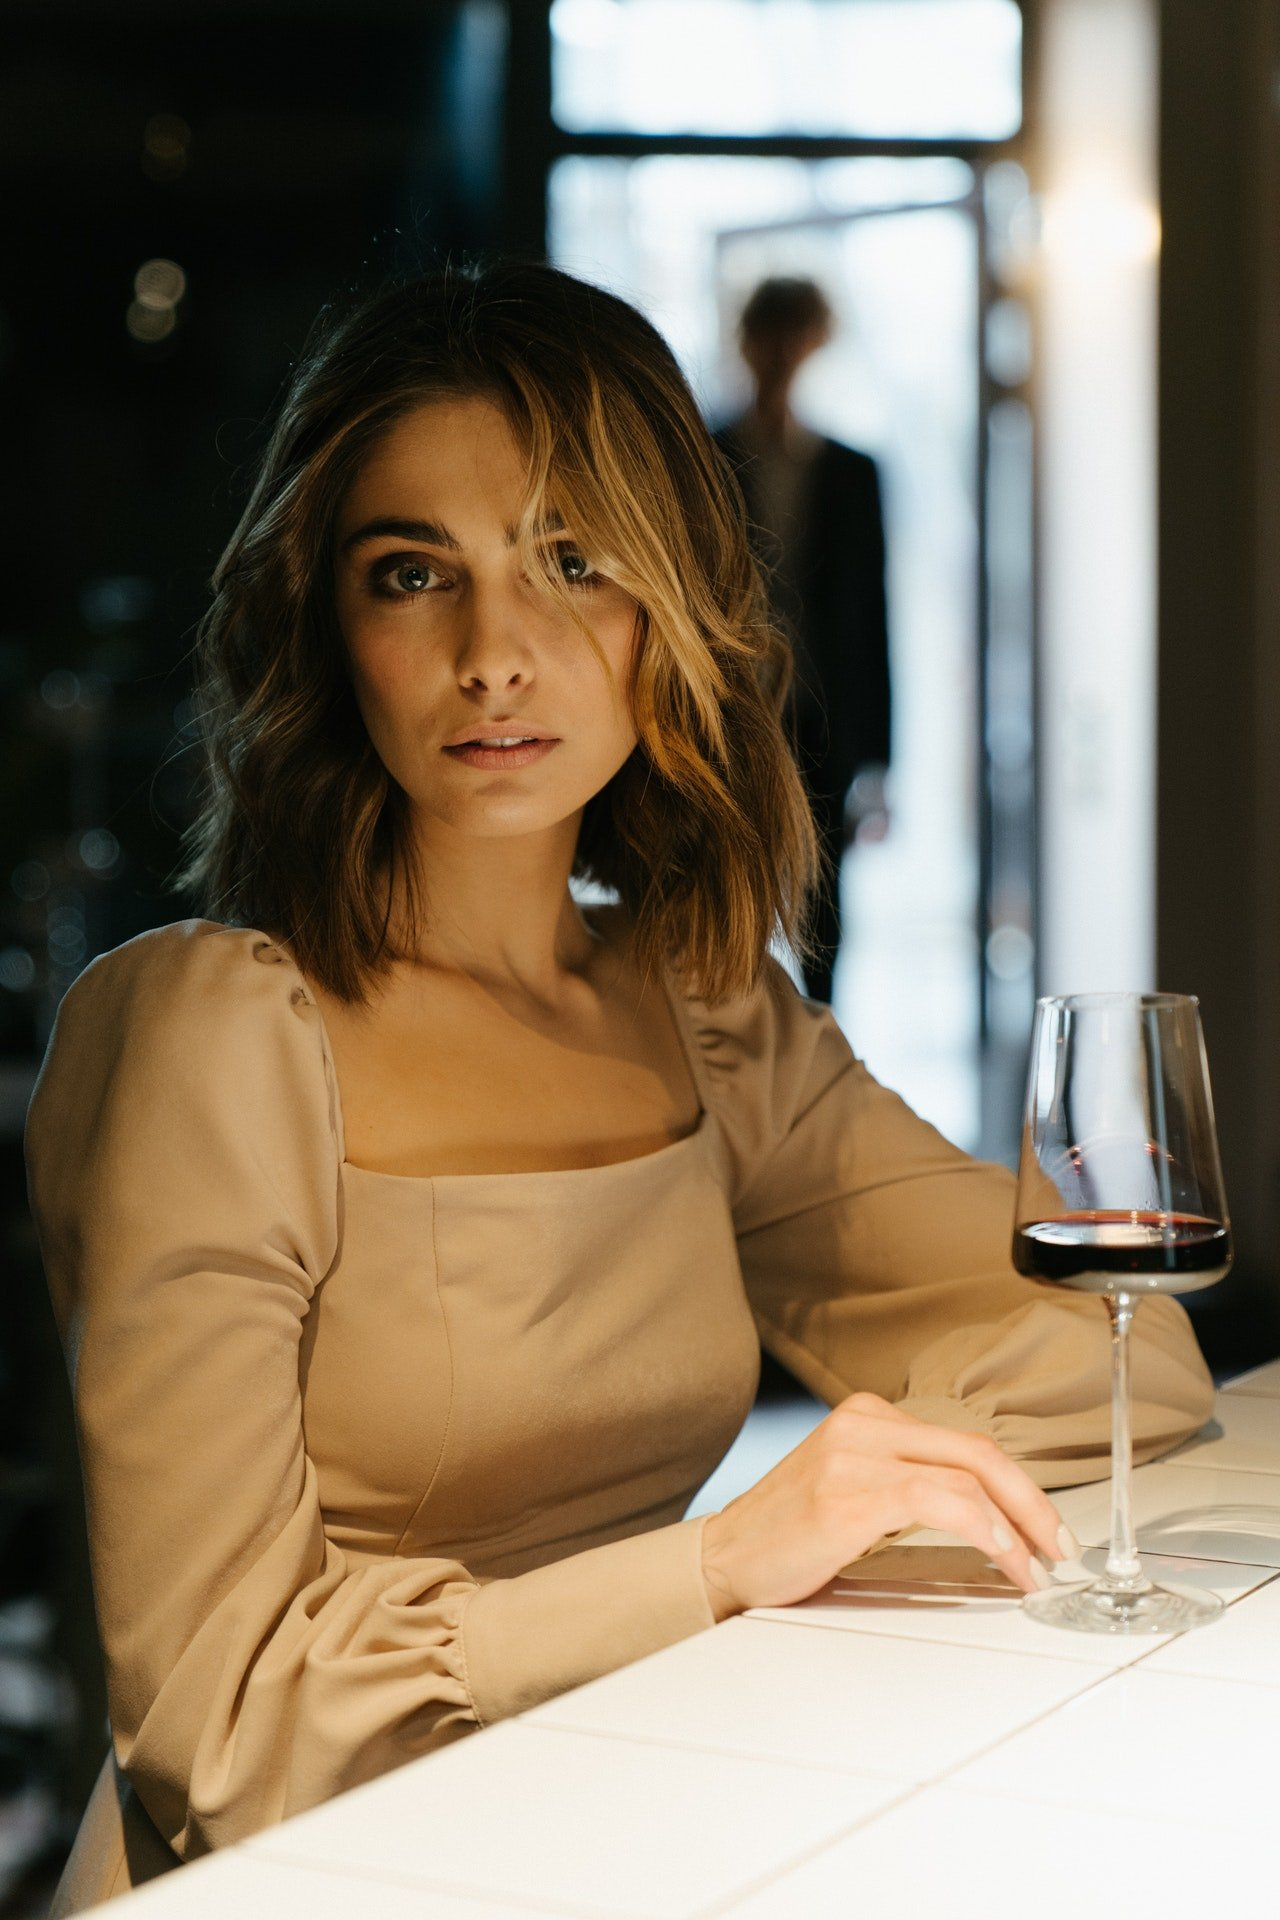 Photo of a woman in a restaurant holding a wine glass | Photo: Pexels